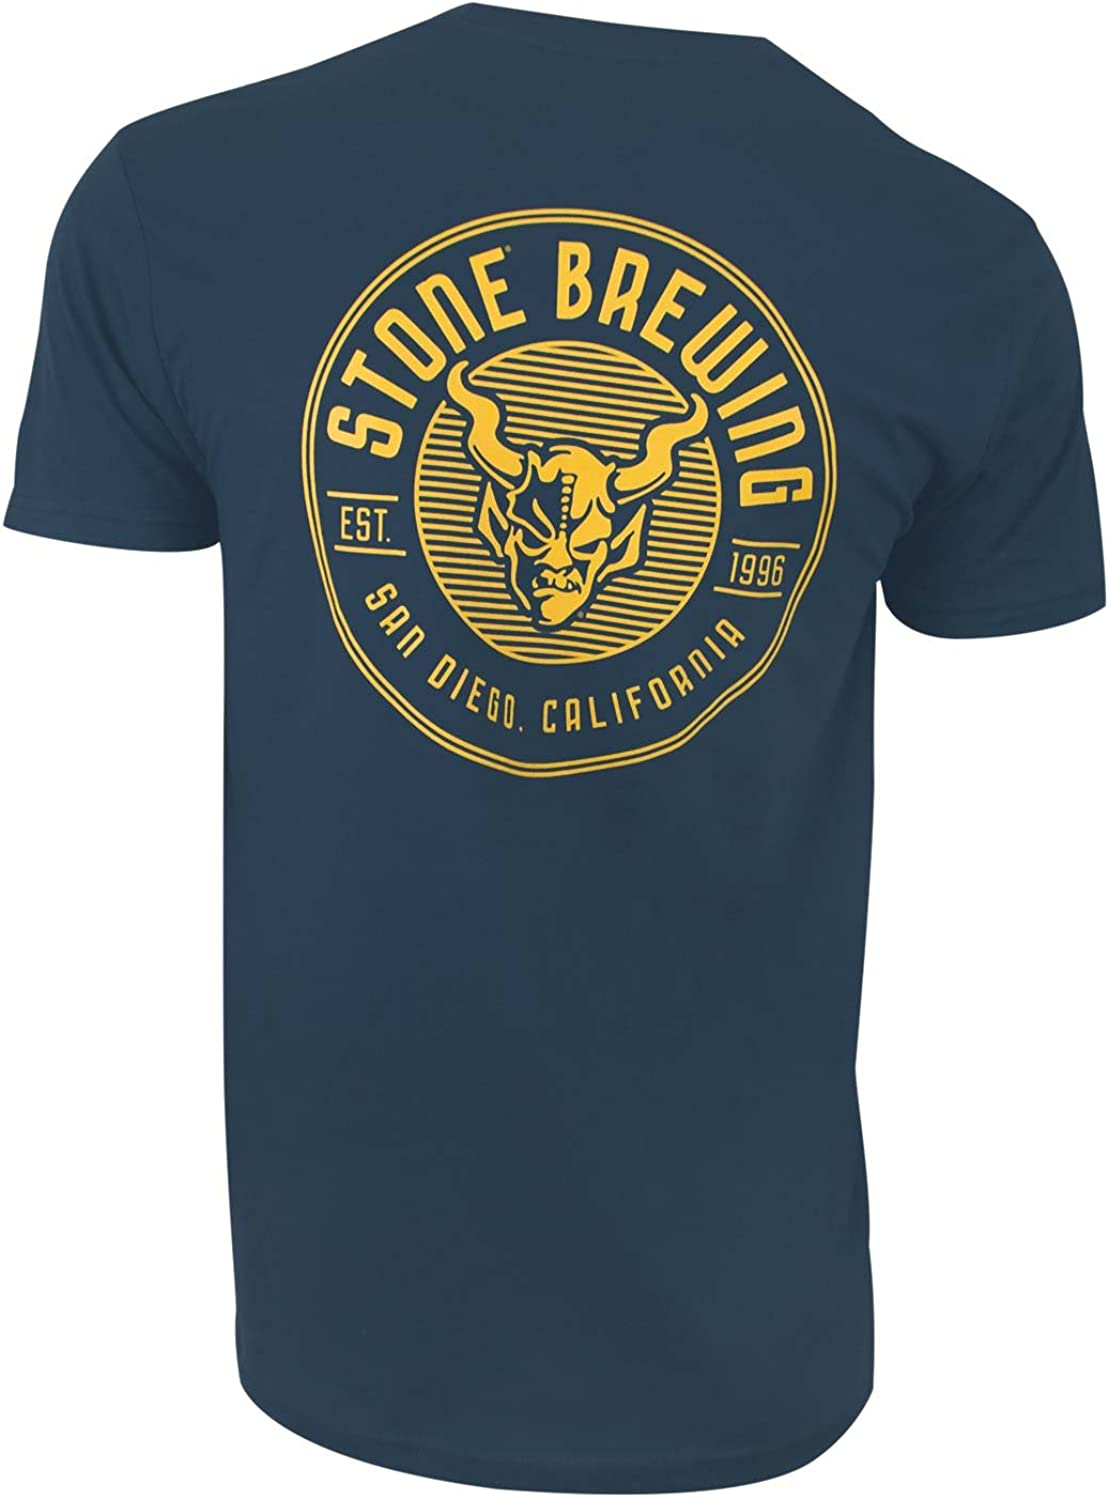 Criterion Tee Shirt Blue Stone Brewing Co